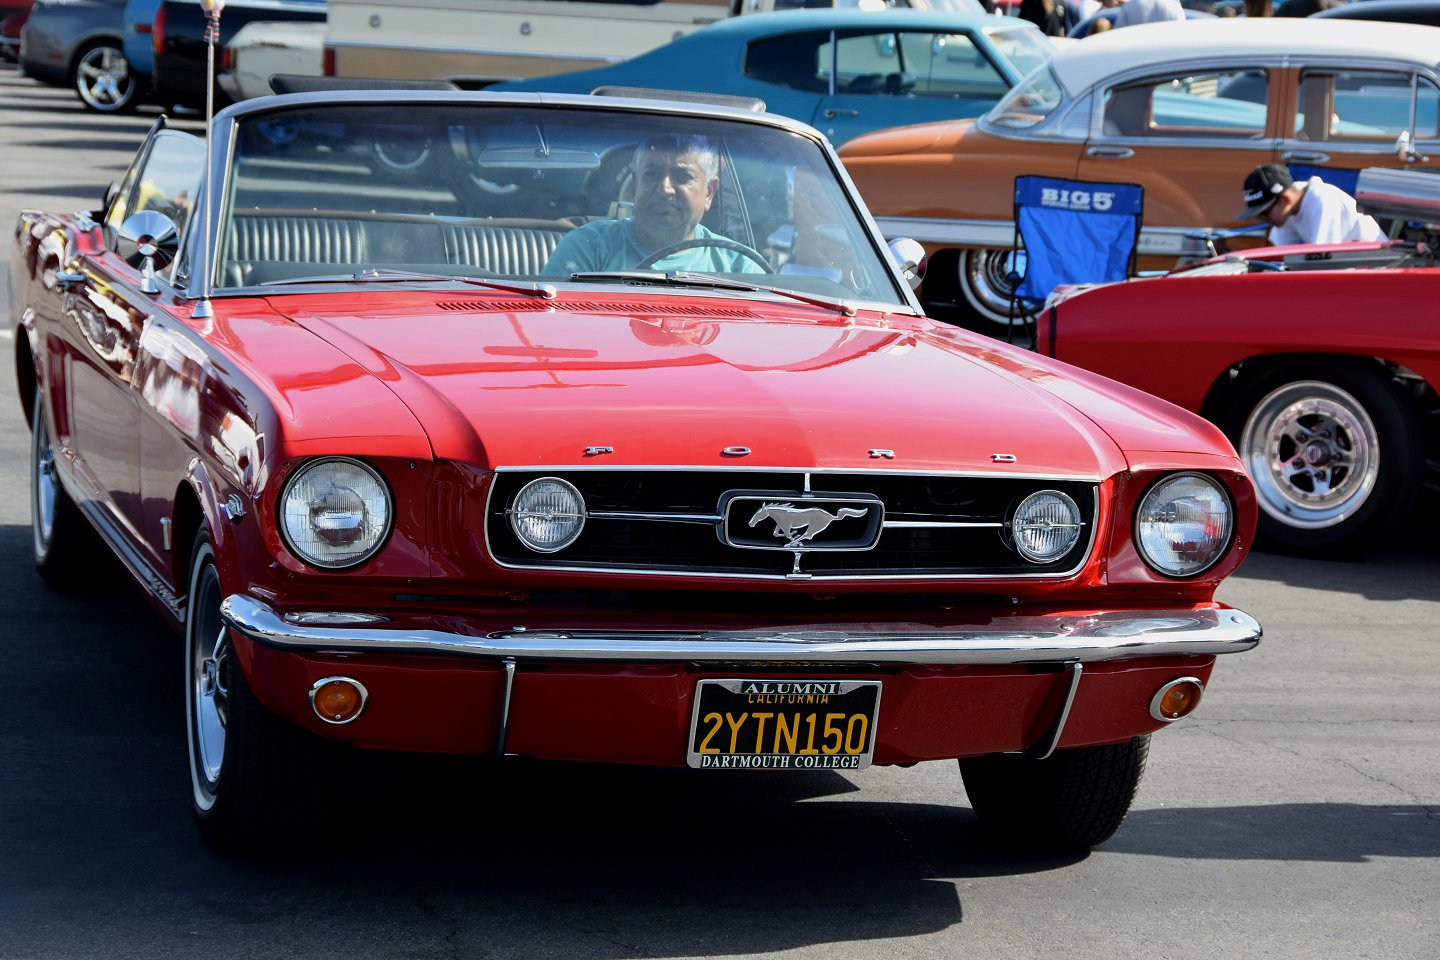 A great mustang convertible in the correct specs a true classic and an exciting car to drive